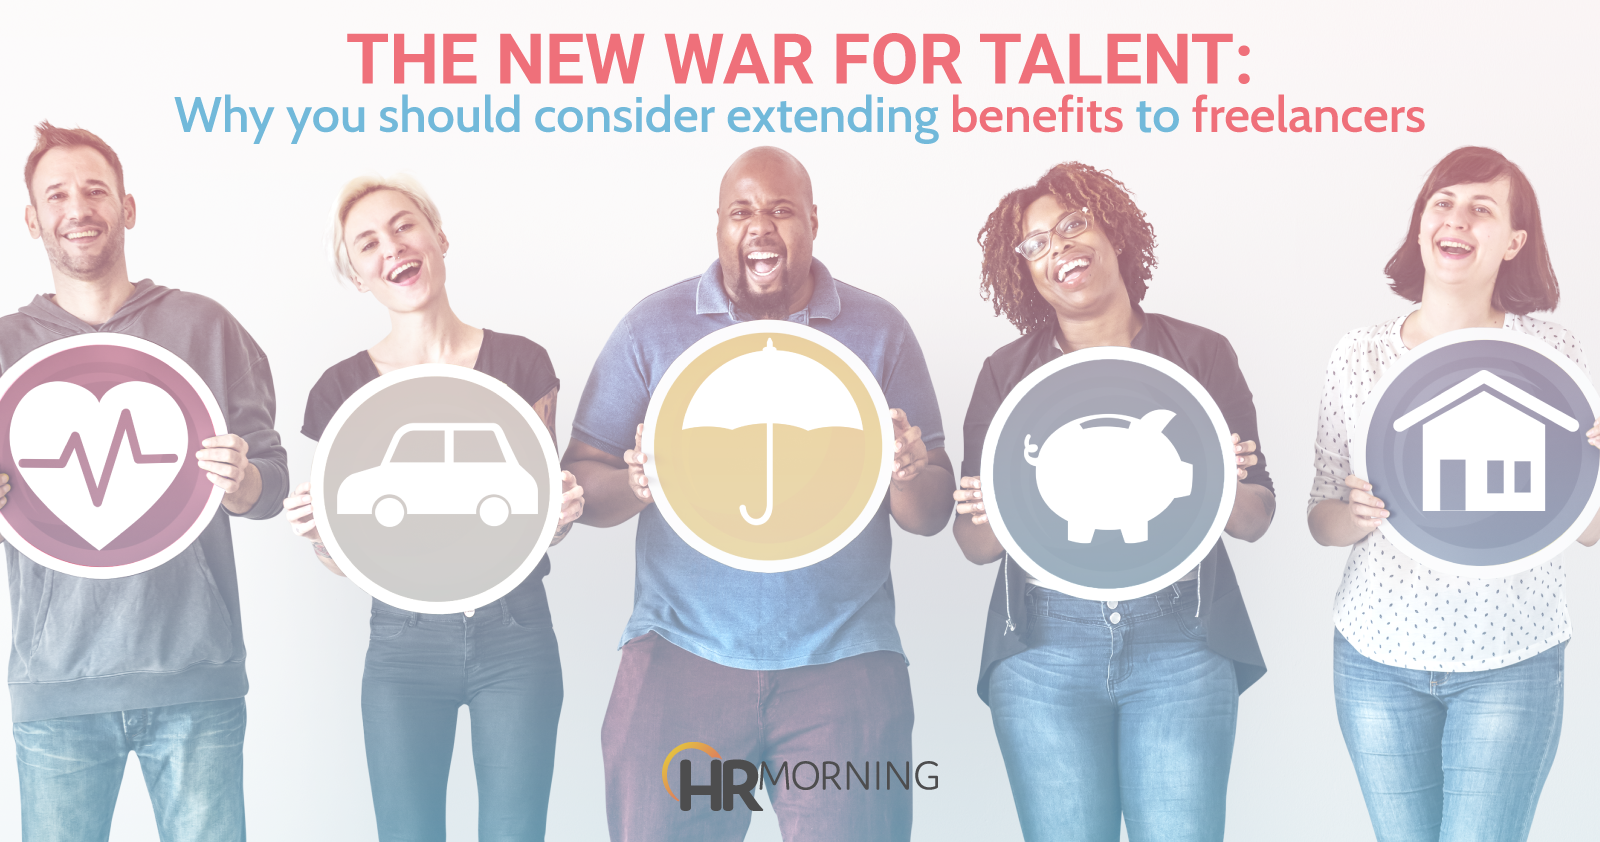 war talent benefits freelancers